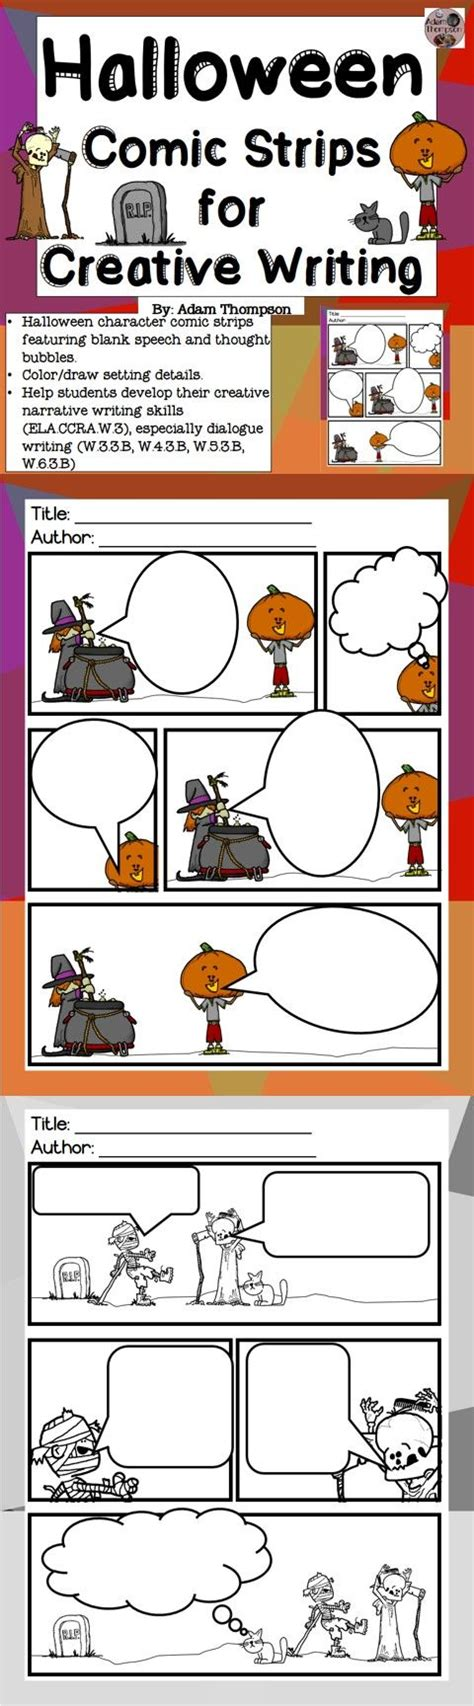 Halloween Writing Comic Strips   Thought bubbles, Writing